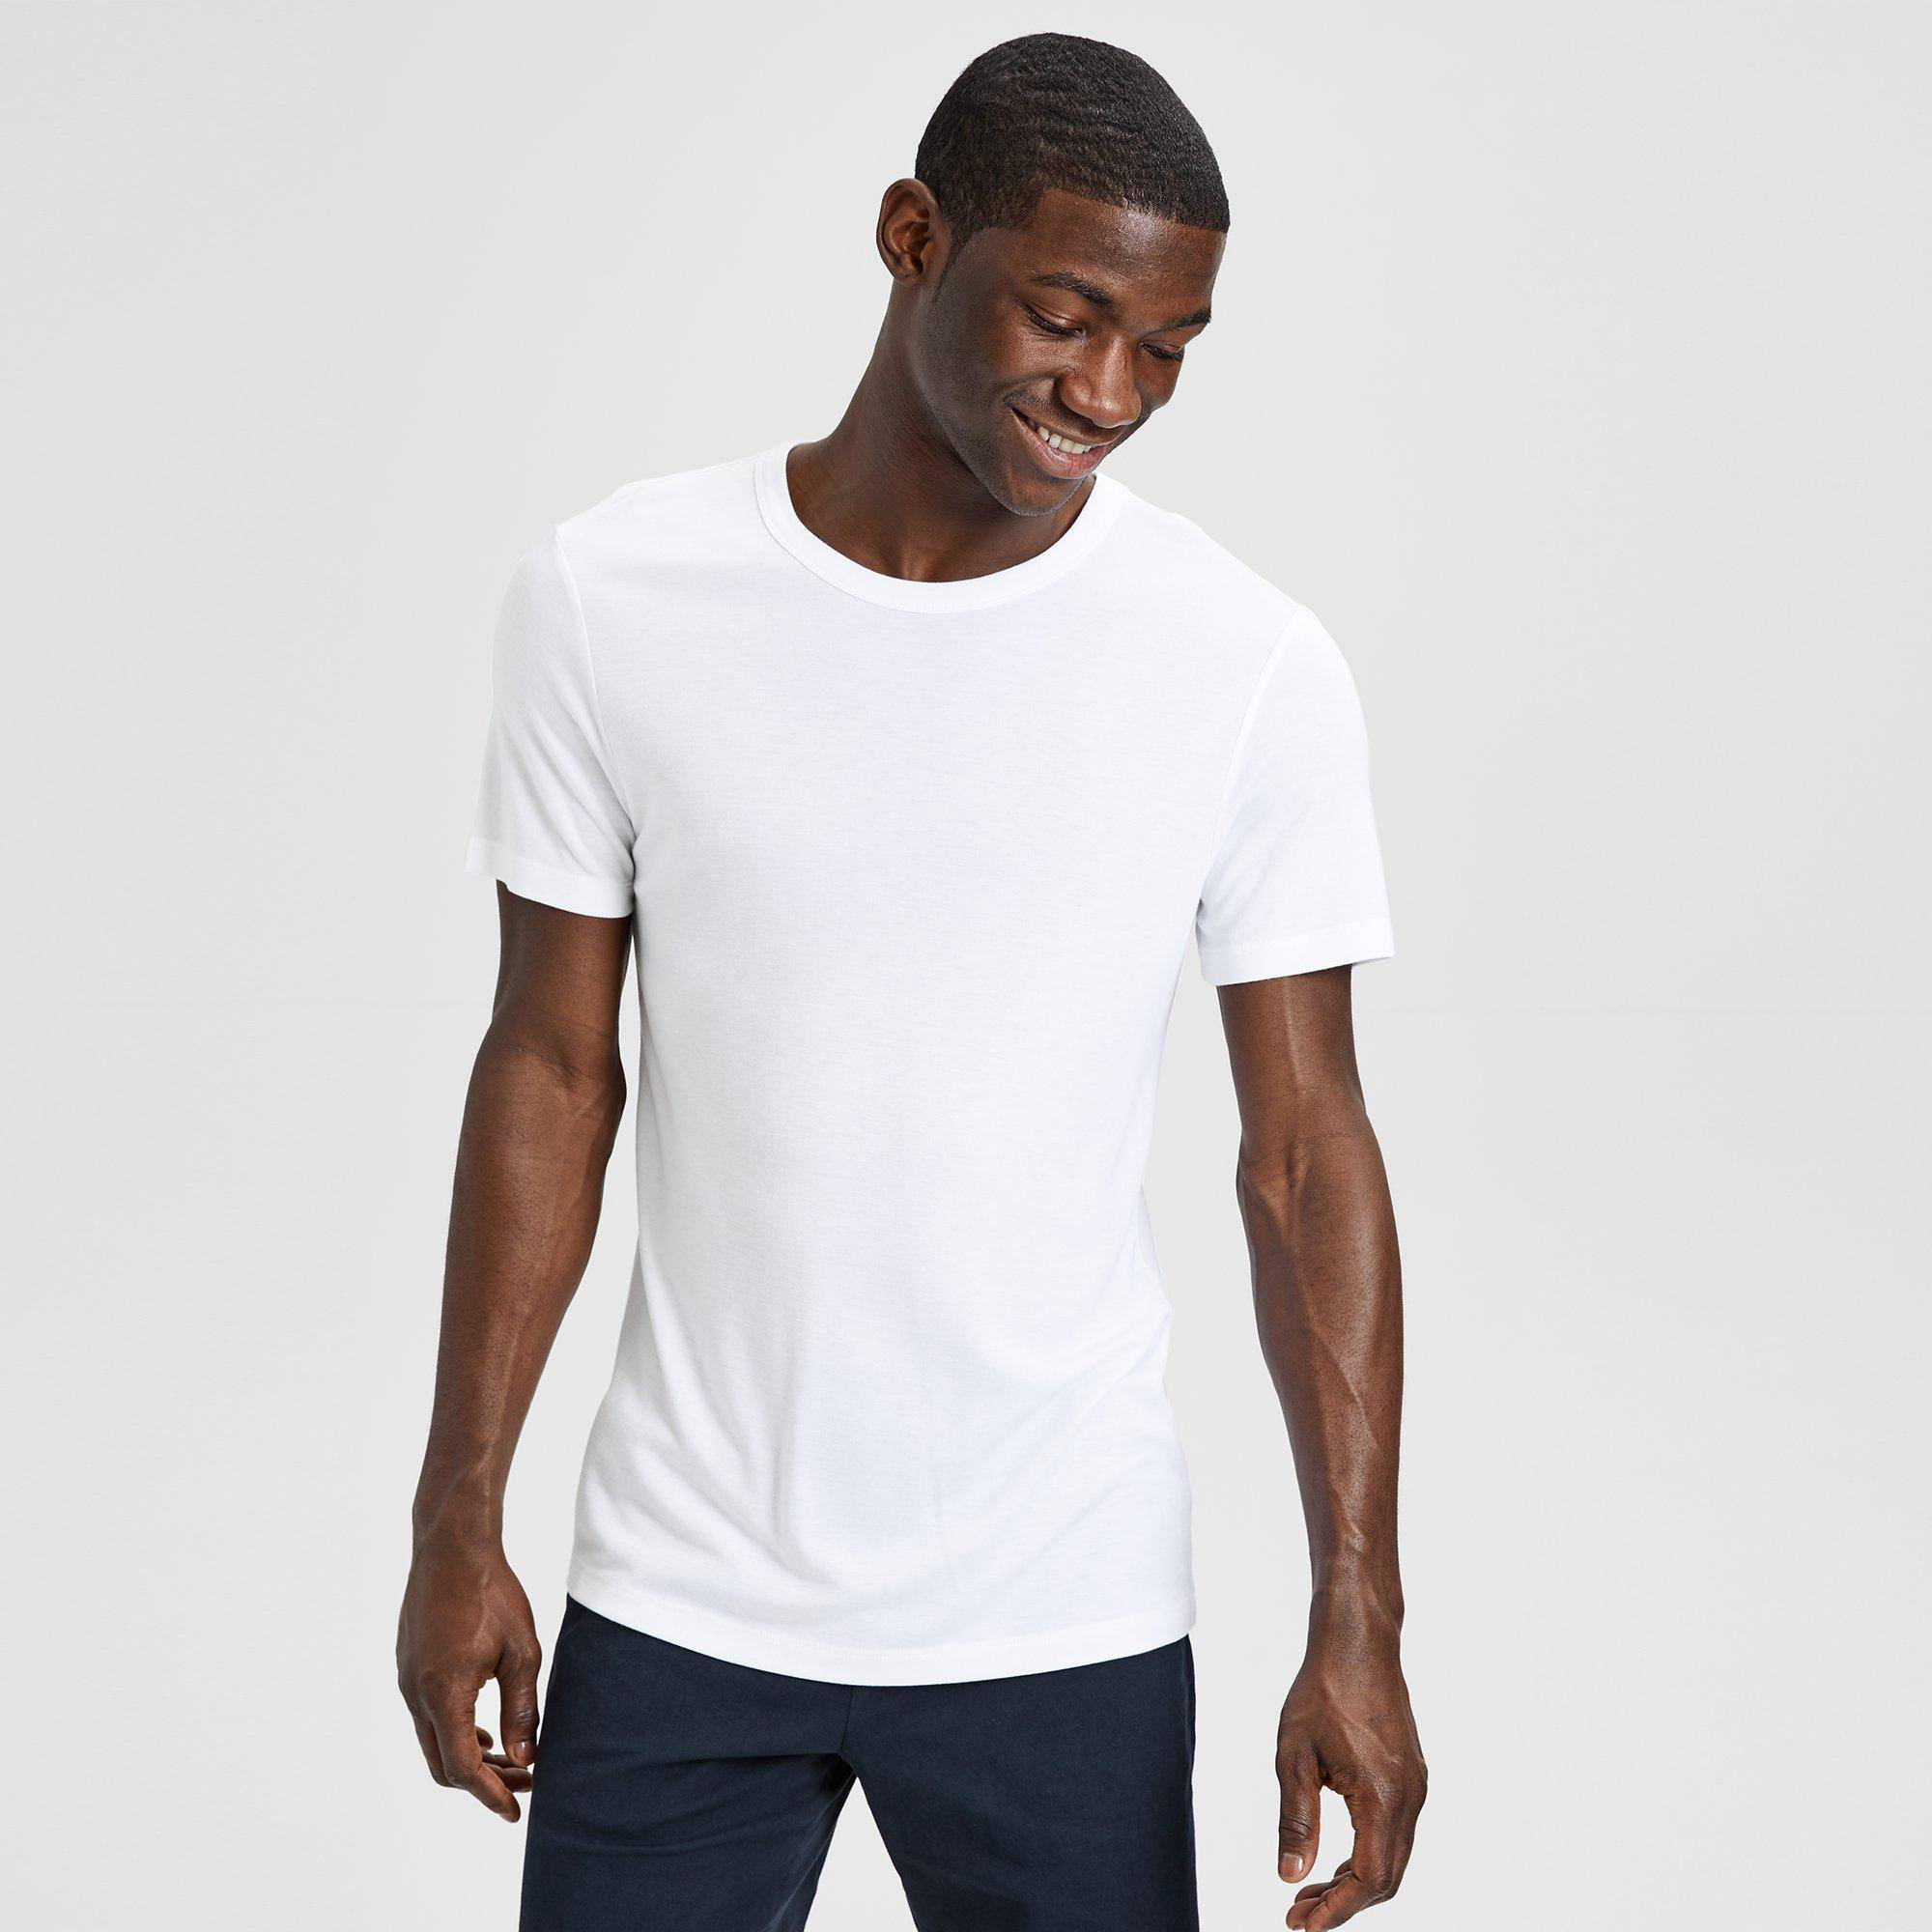 Theory Lyocell Essential Tee  - WHITE - male - Size: Extra Large